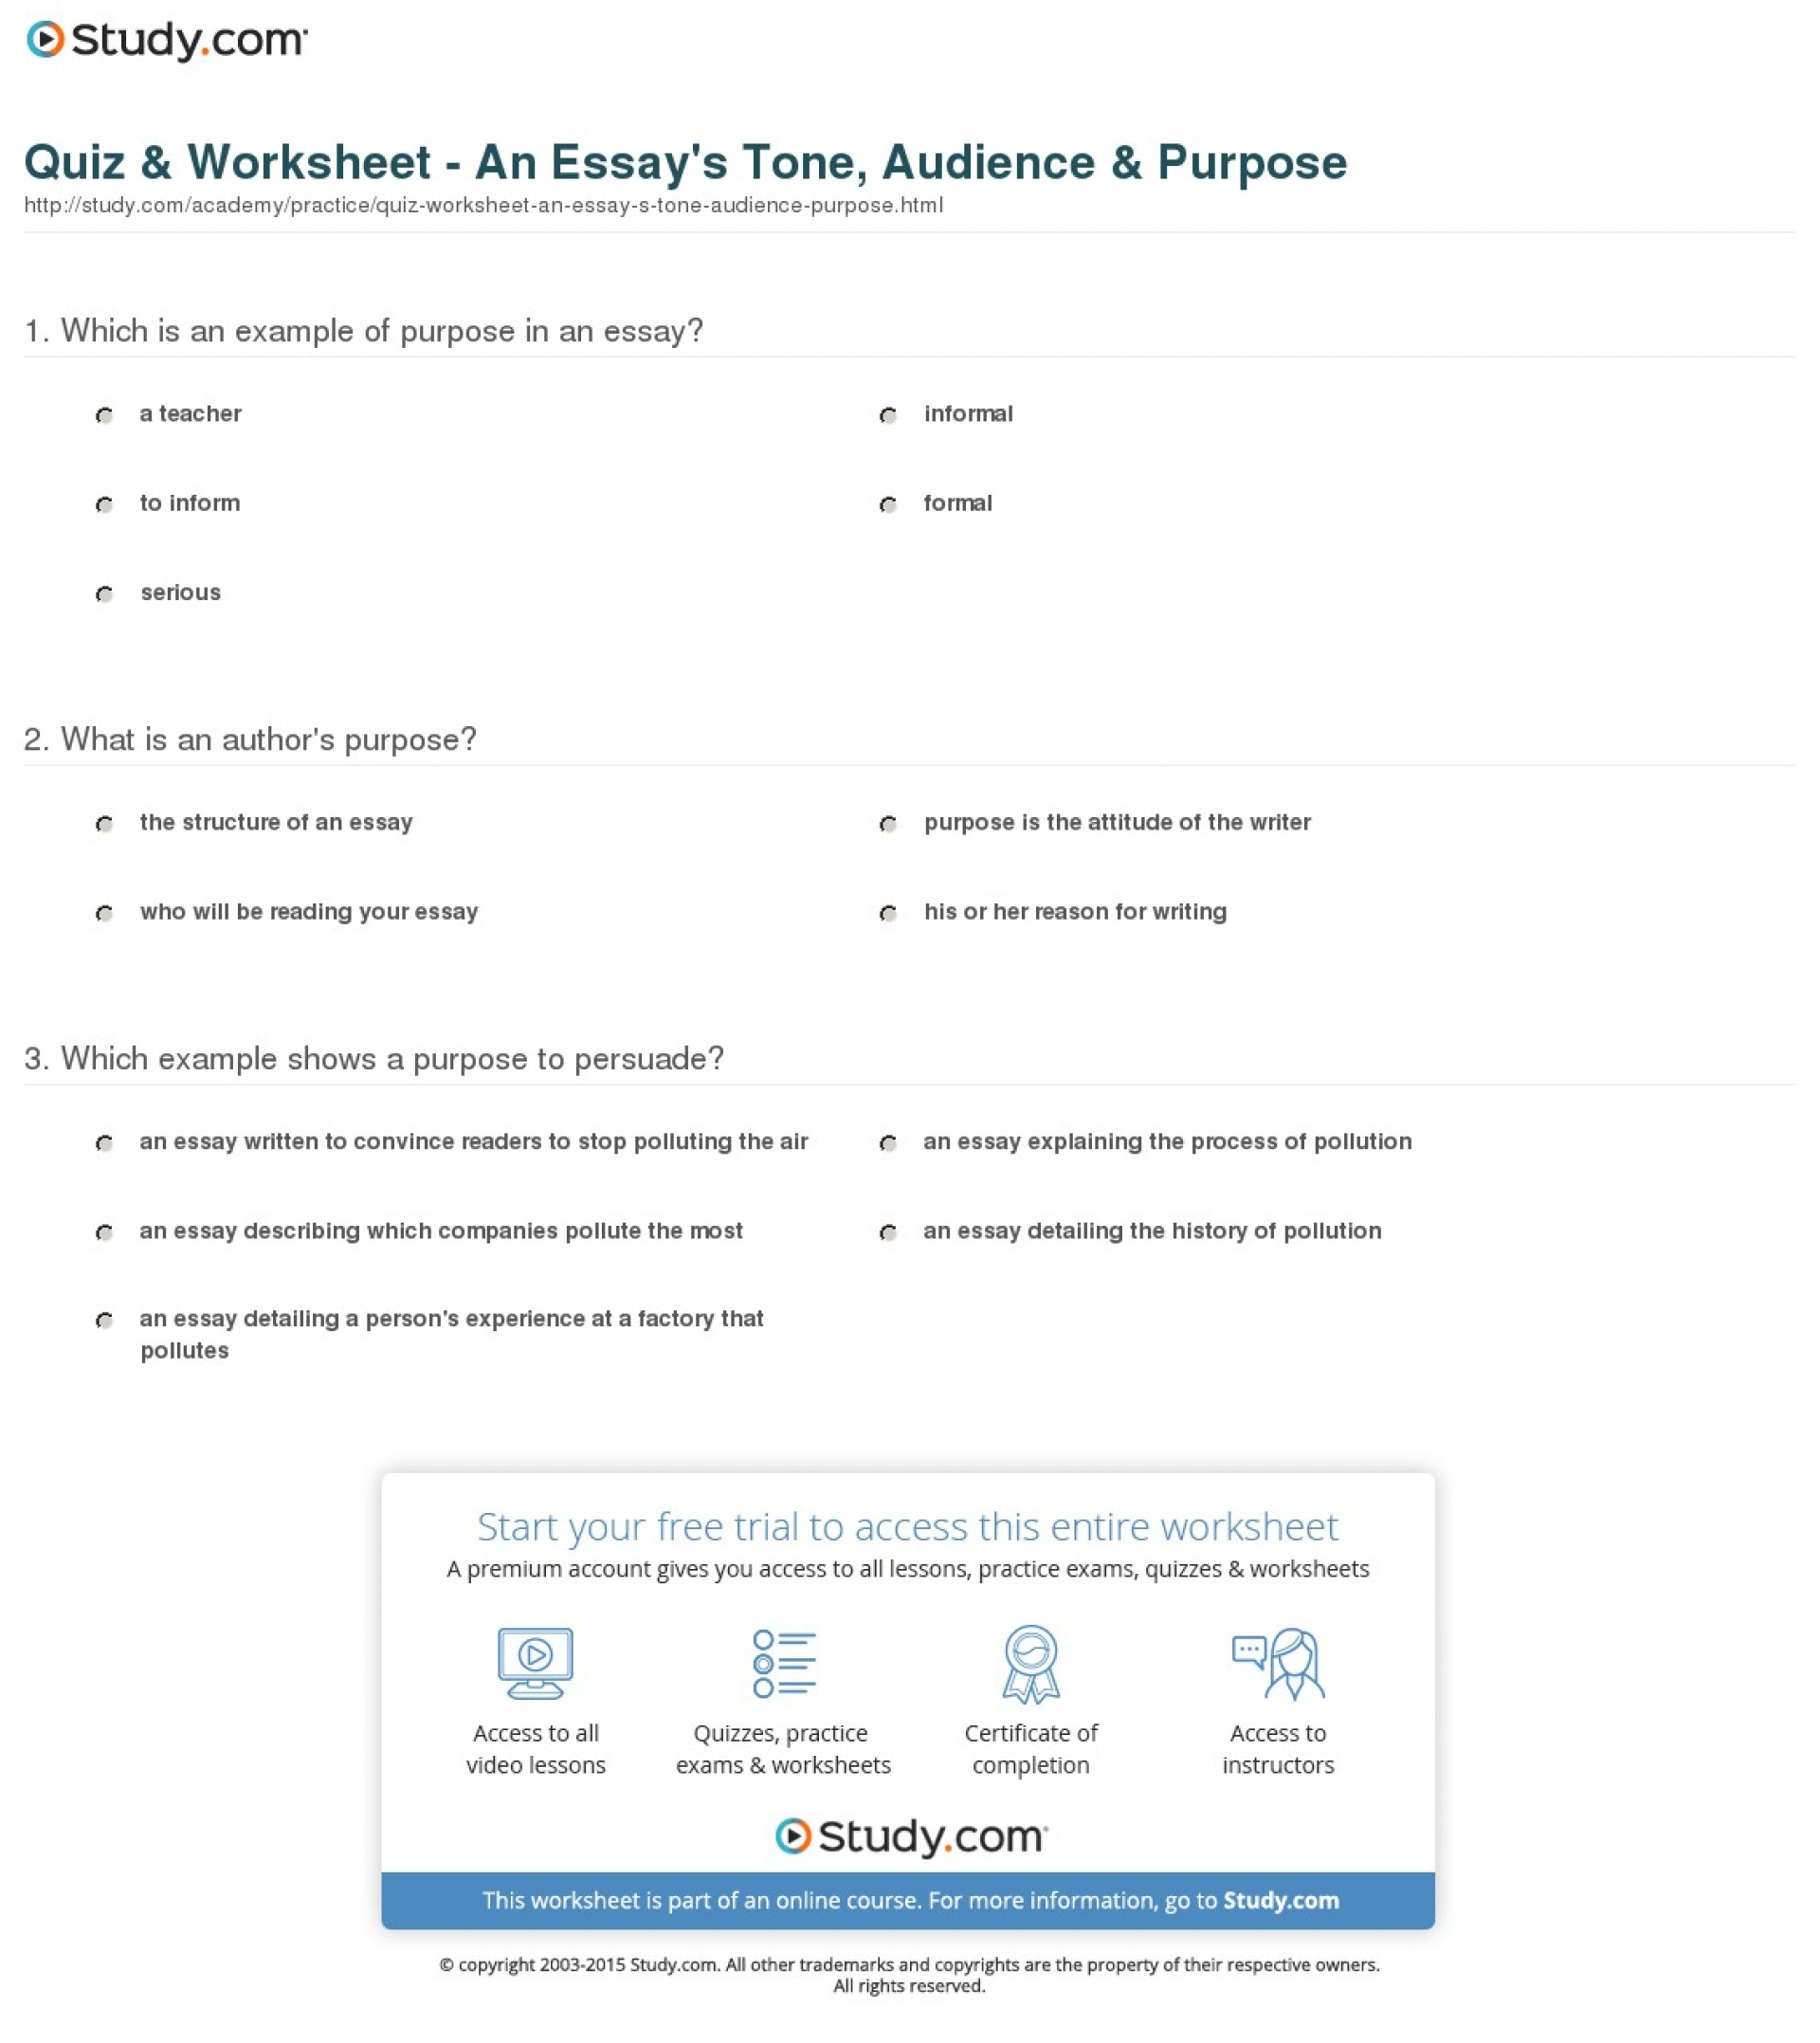 010 Essay Example What Is The Purpose Of An Quiz Worksheet S Tone Wonderful Introduction In Brainly Outline For Argumentative With A Focus On Division-classification 1920